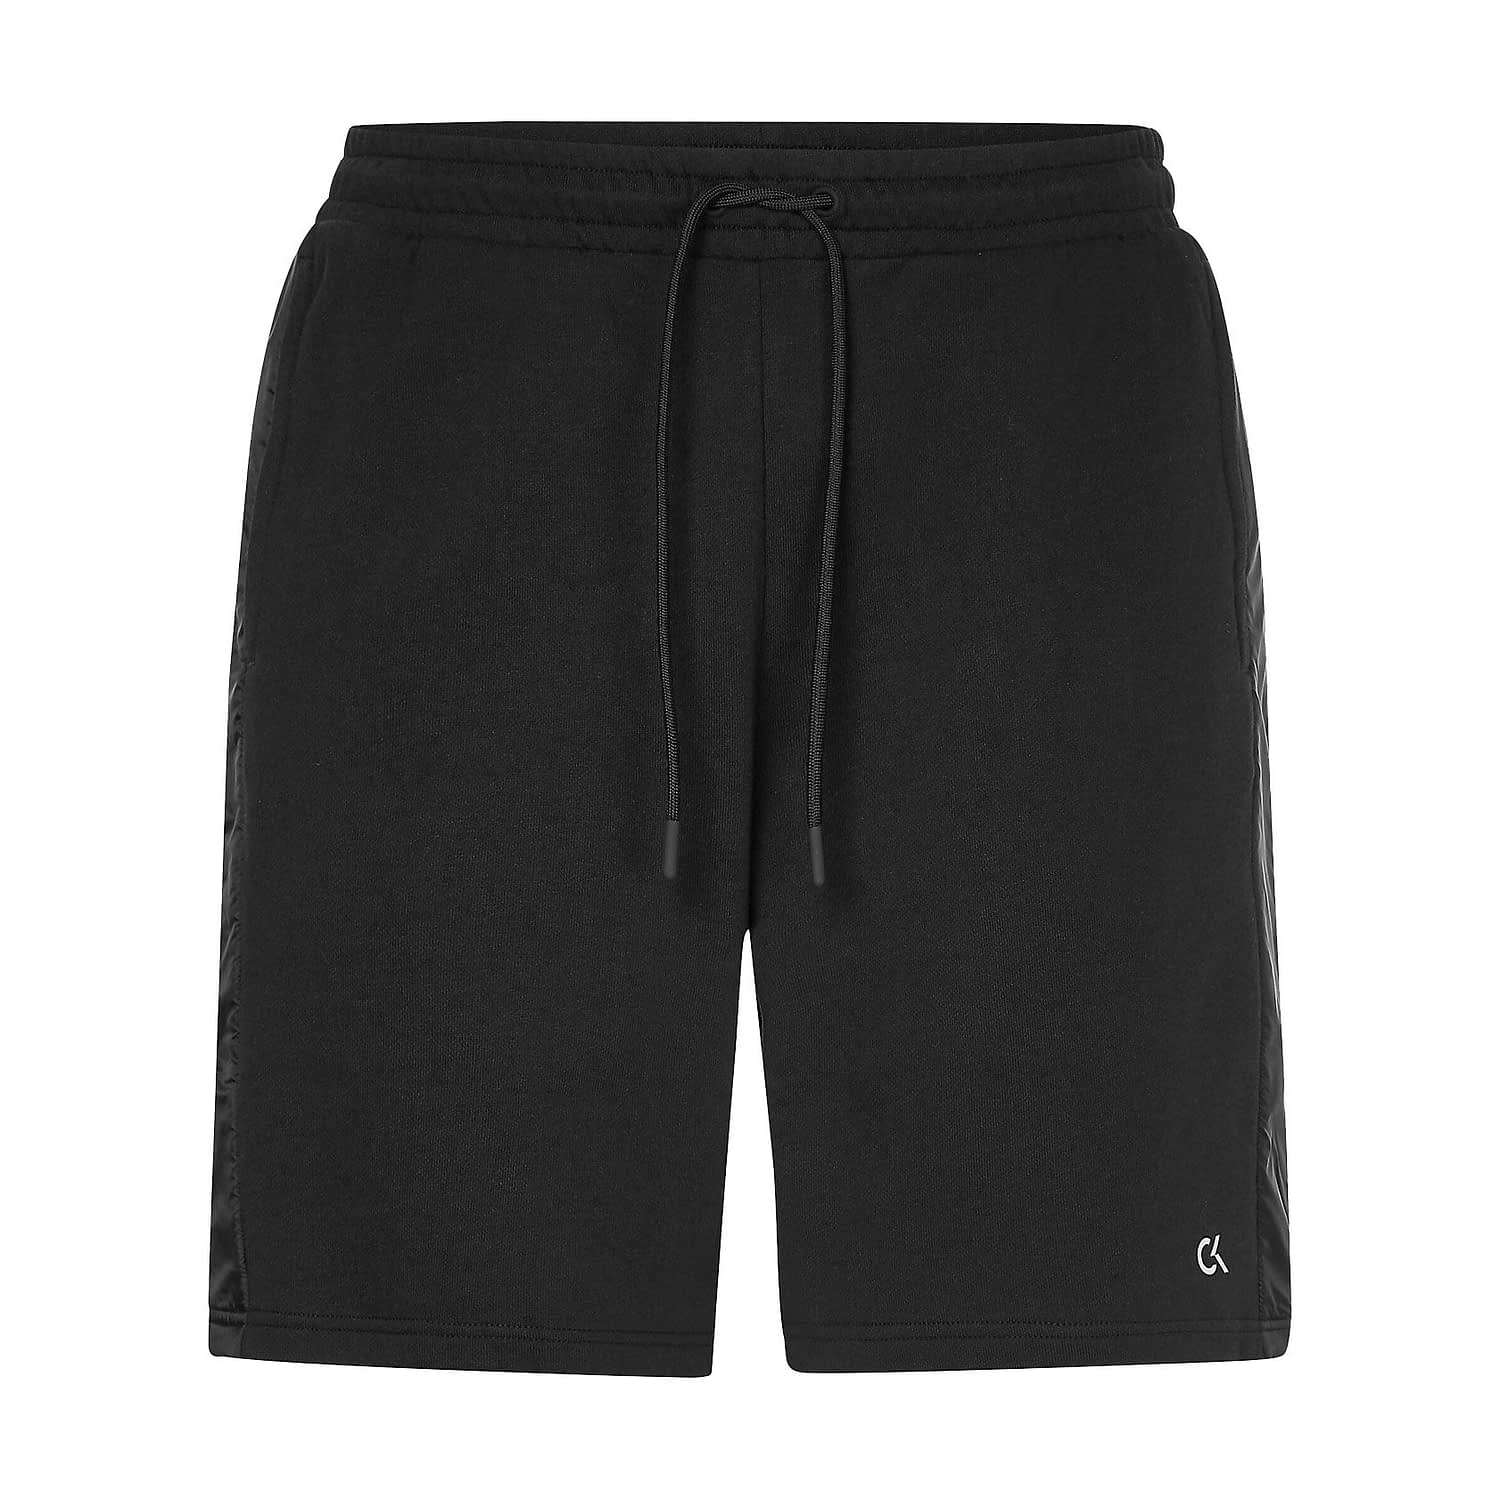 "Calvin Klein 9"" Knit Short Zwart 00GMT1S858-007 main"